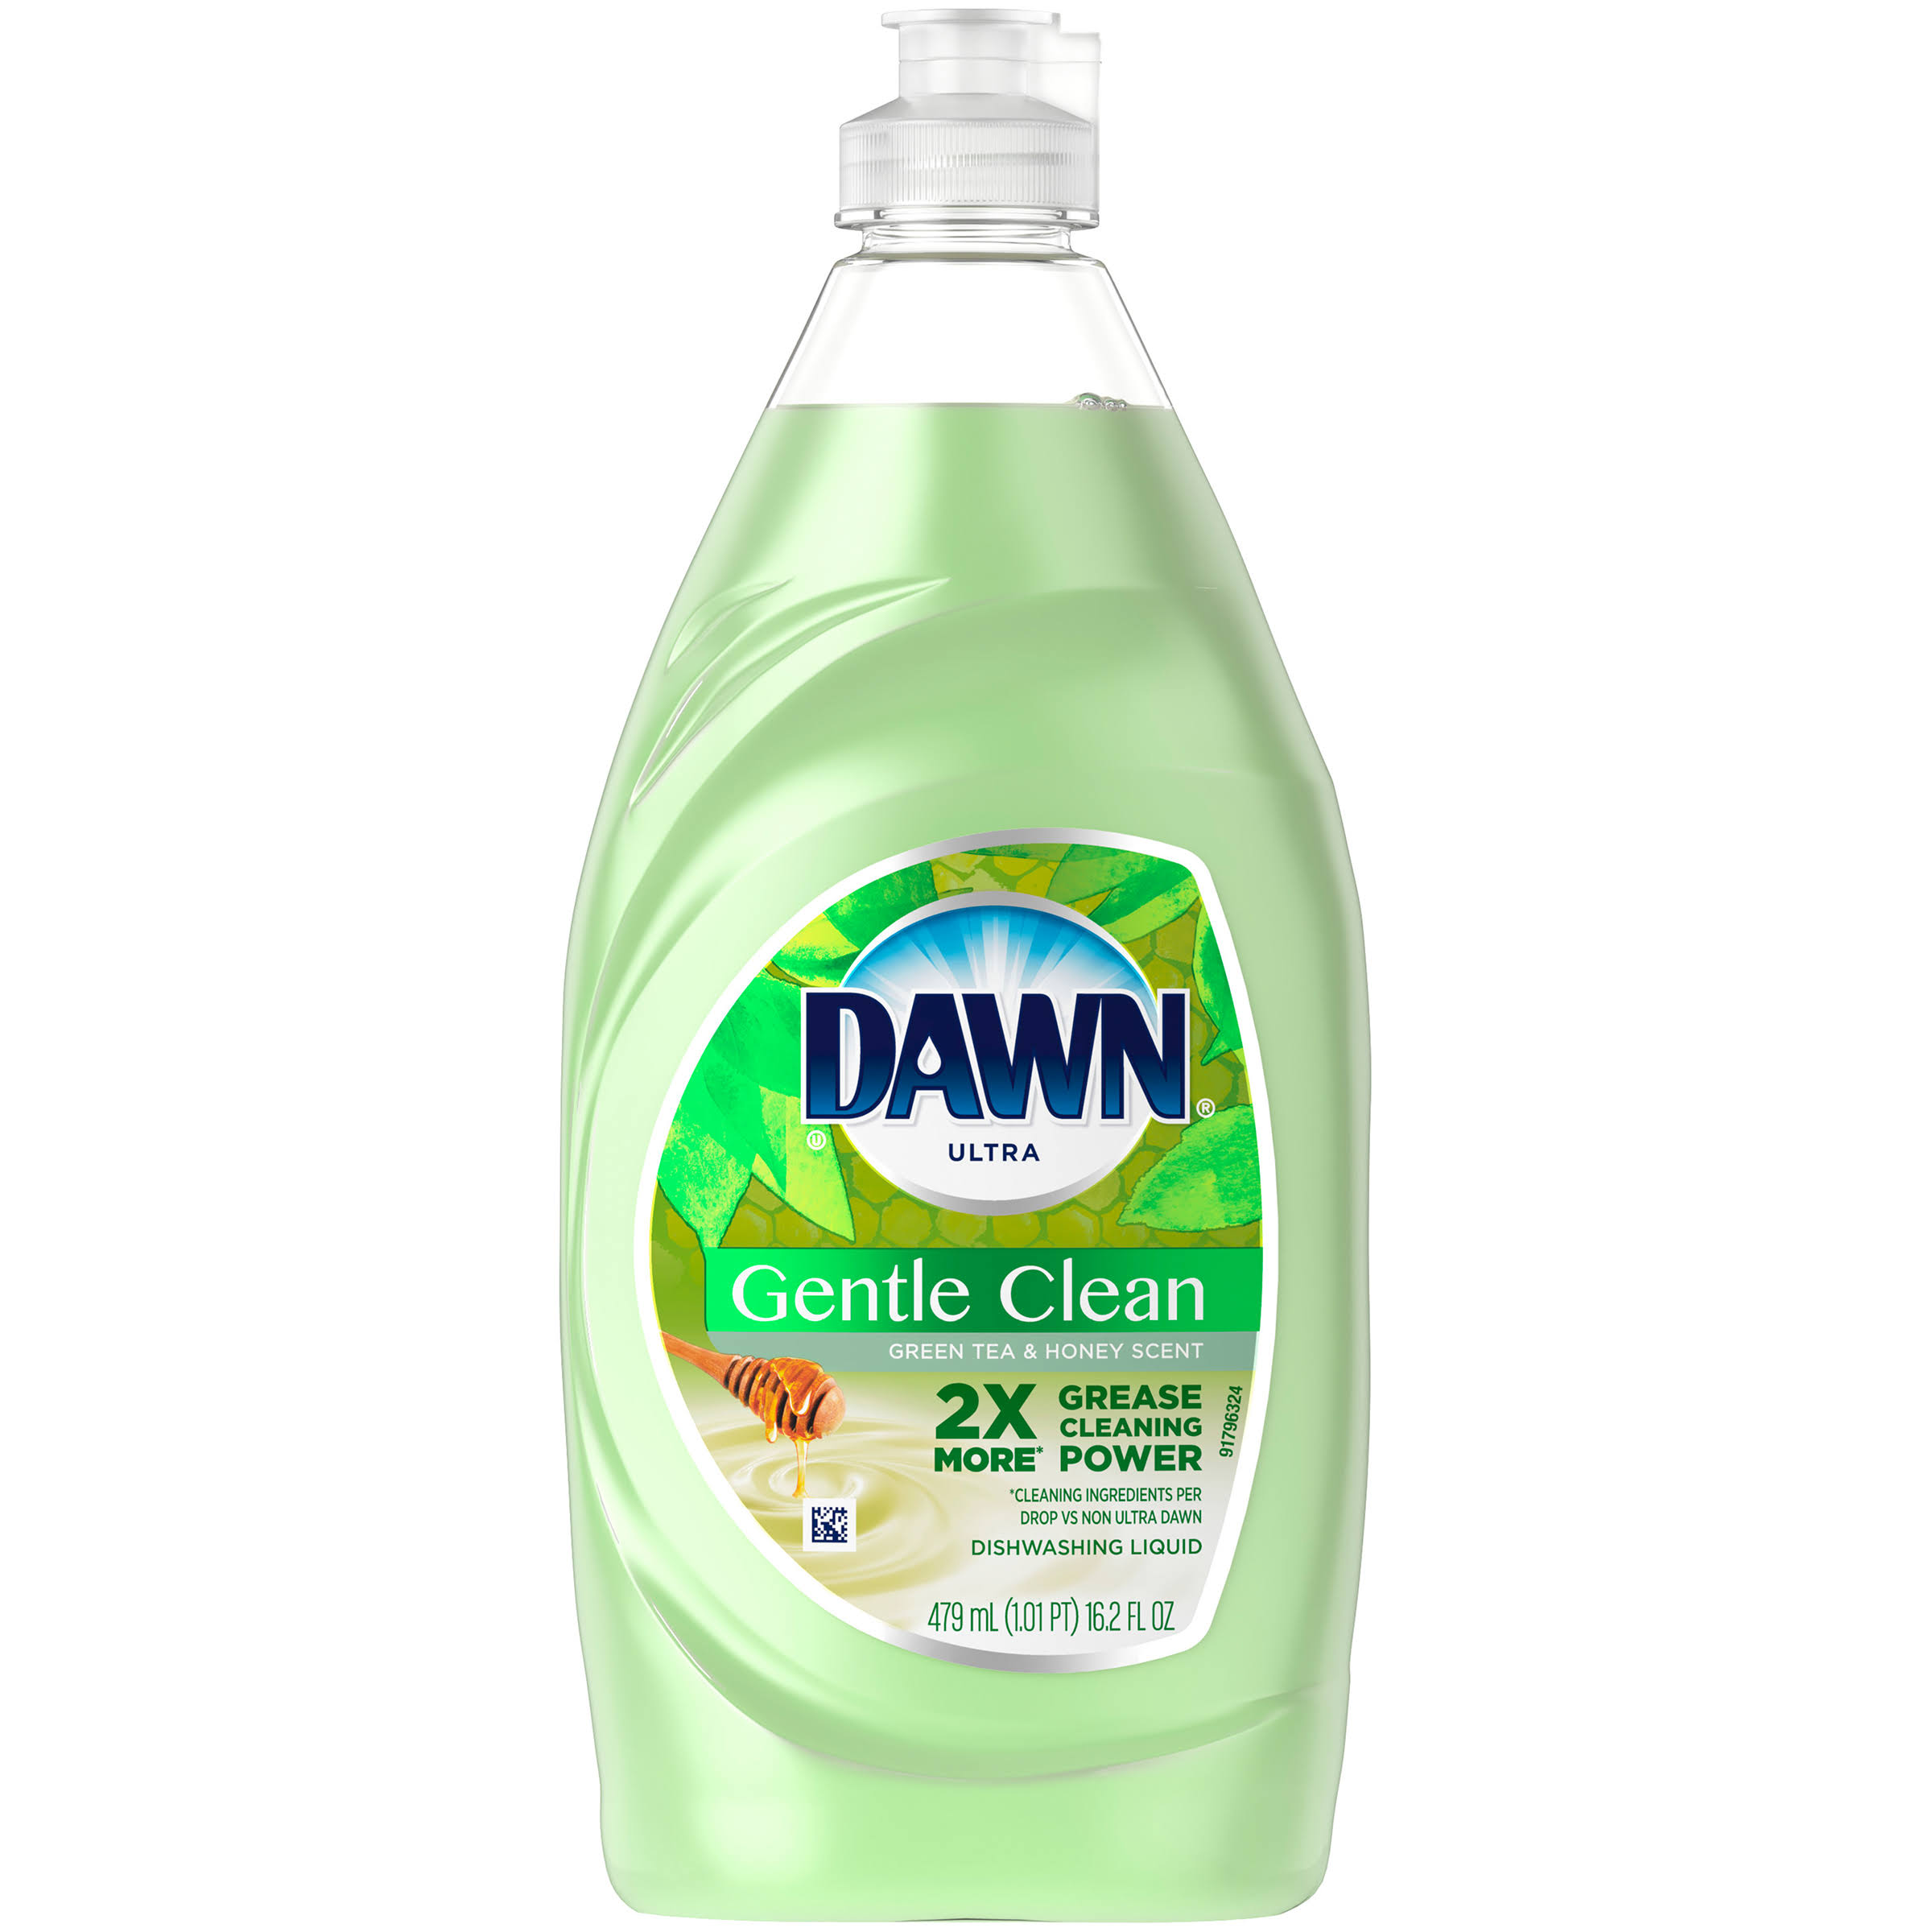 Dawn Gentle Clean Dishwashing Liquid Dish Soap - Cucumber Melon, 16.2oz